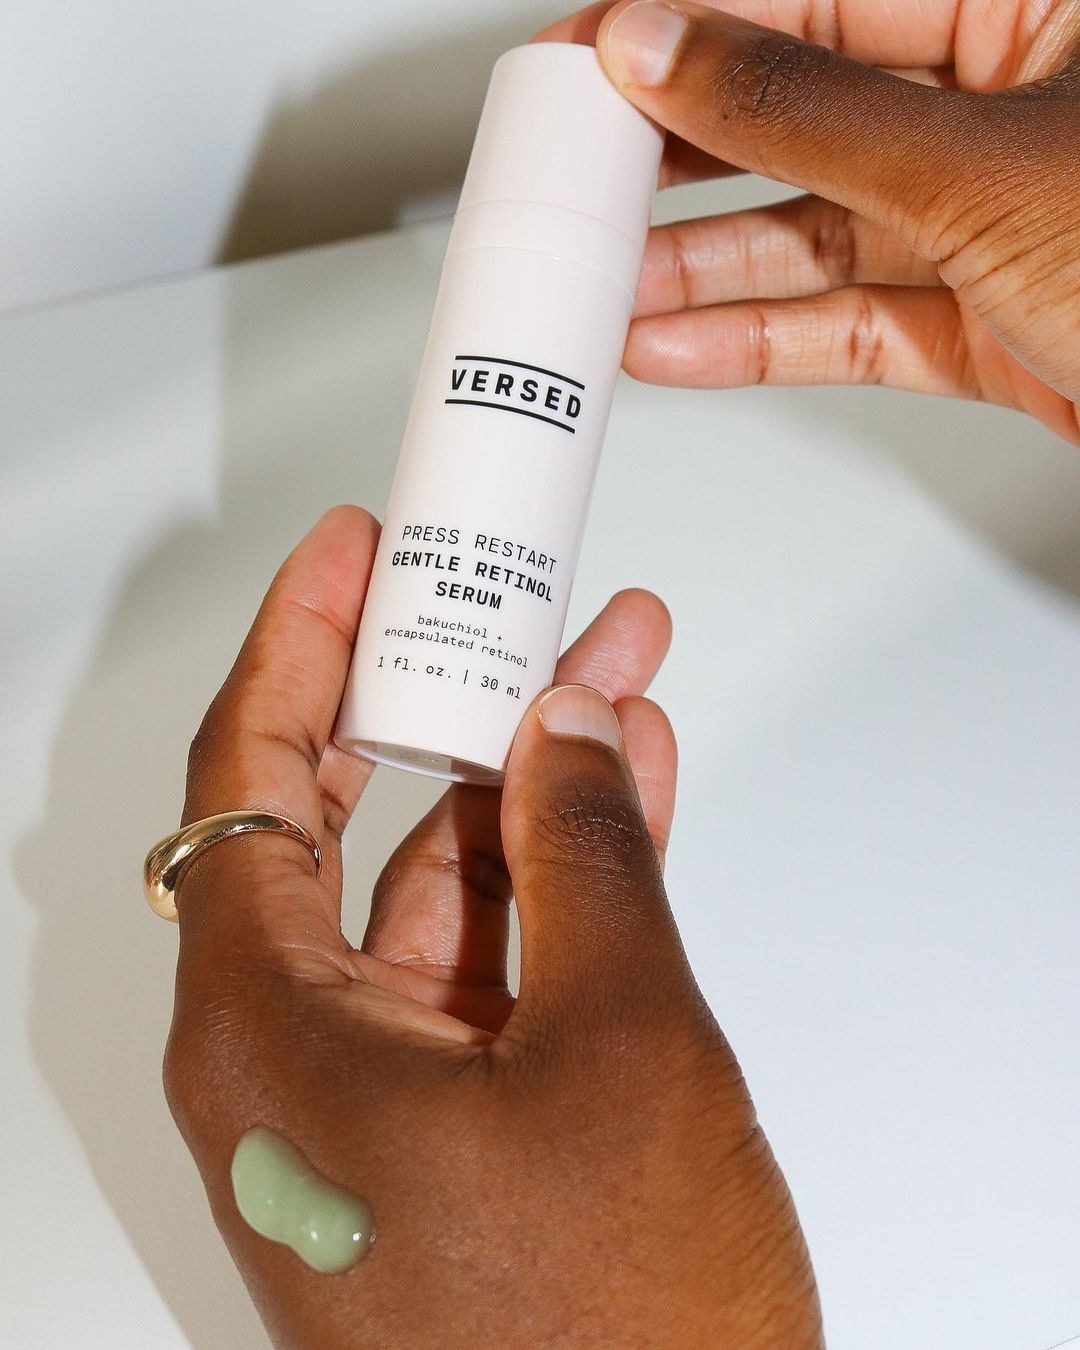 Model with retinol on her hand to show green formula